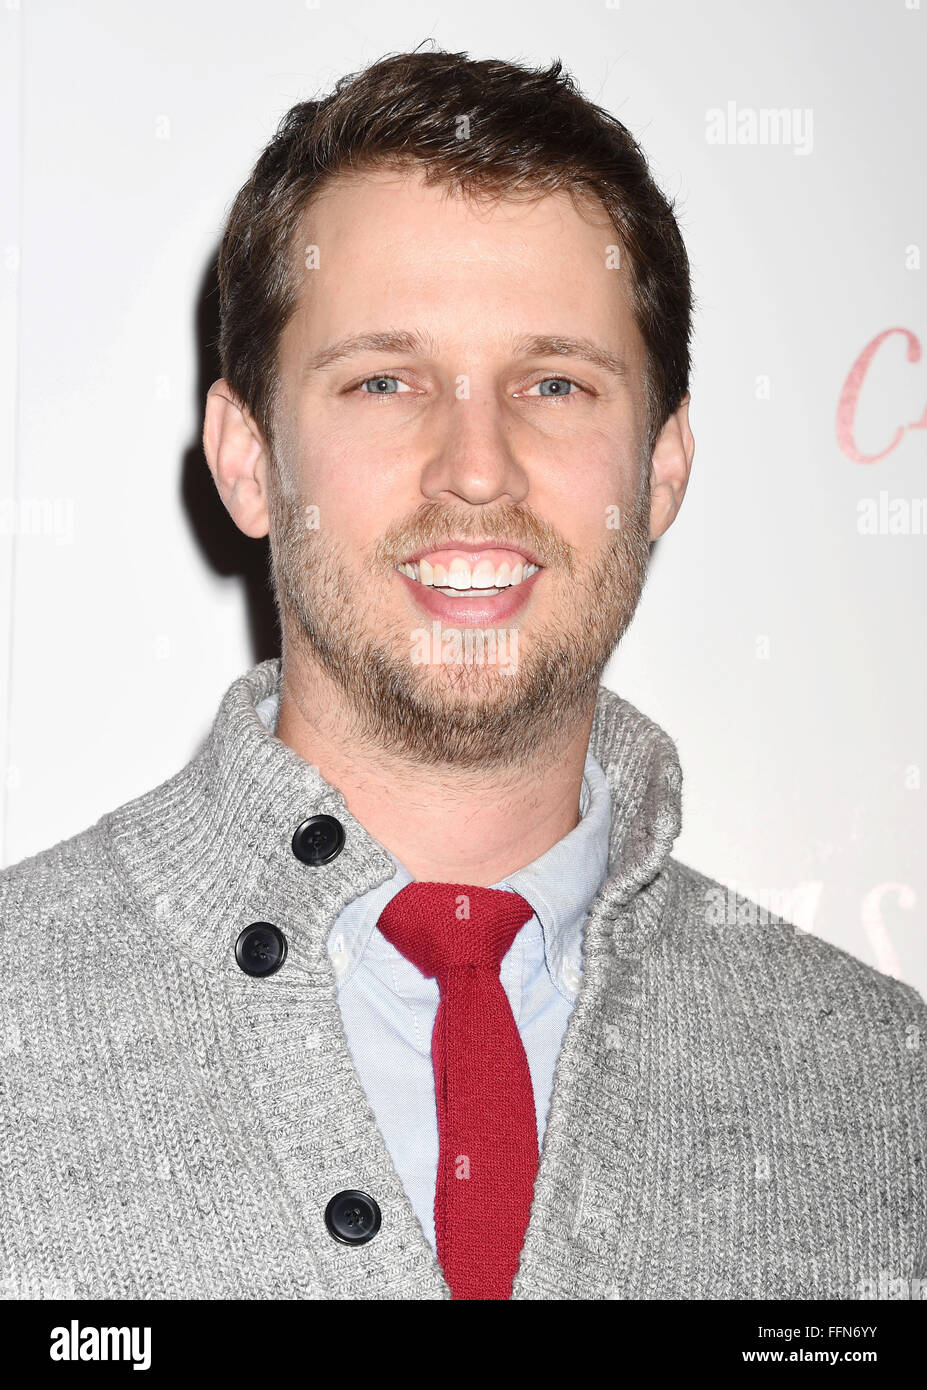 Actor Jon Heder arrives at the premiere of Unstuck's 'Christmas Eve' at the ArcLight Hollywood on December - Stock Image